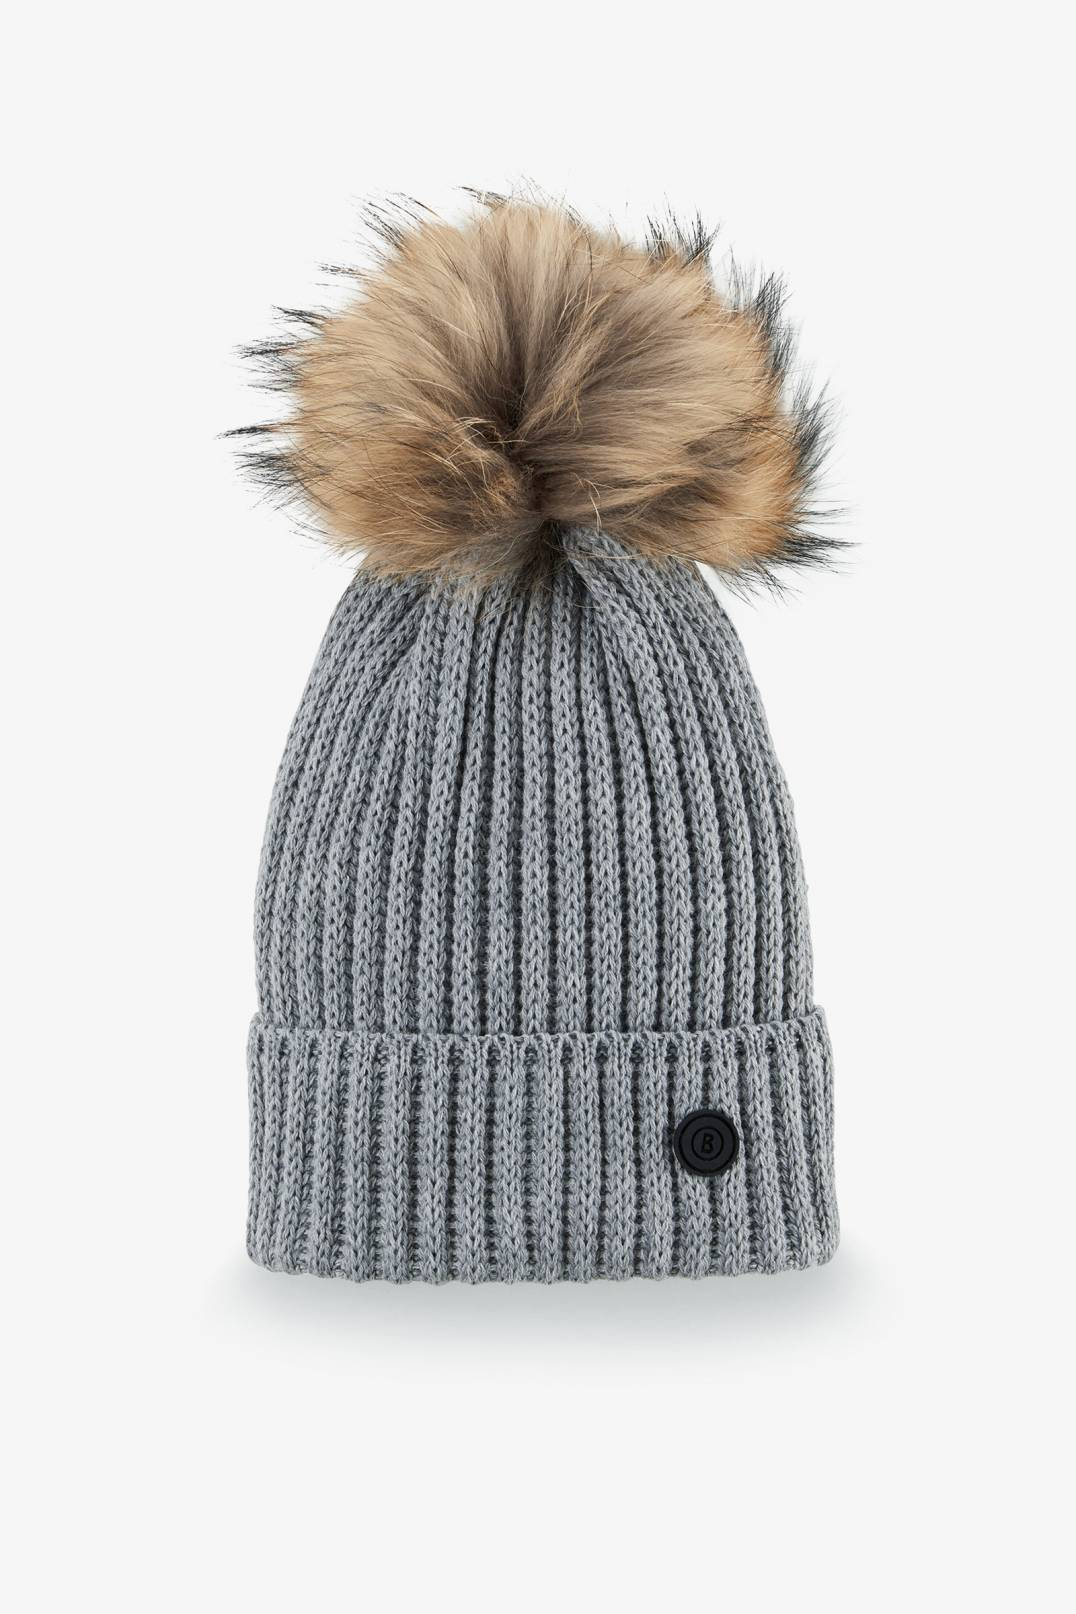 85306f2e651 Bogner Sport Leonie Knitted hat in Husky grey for Woman